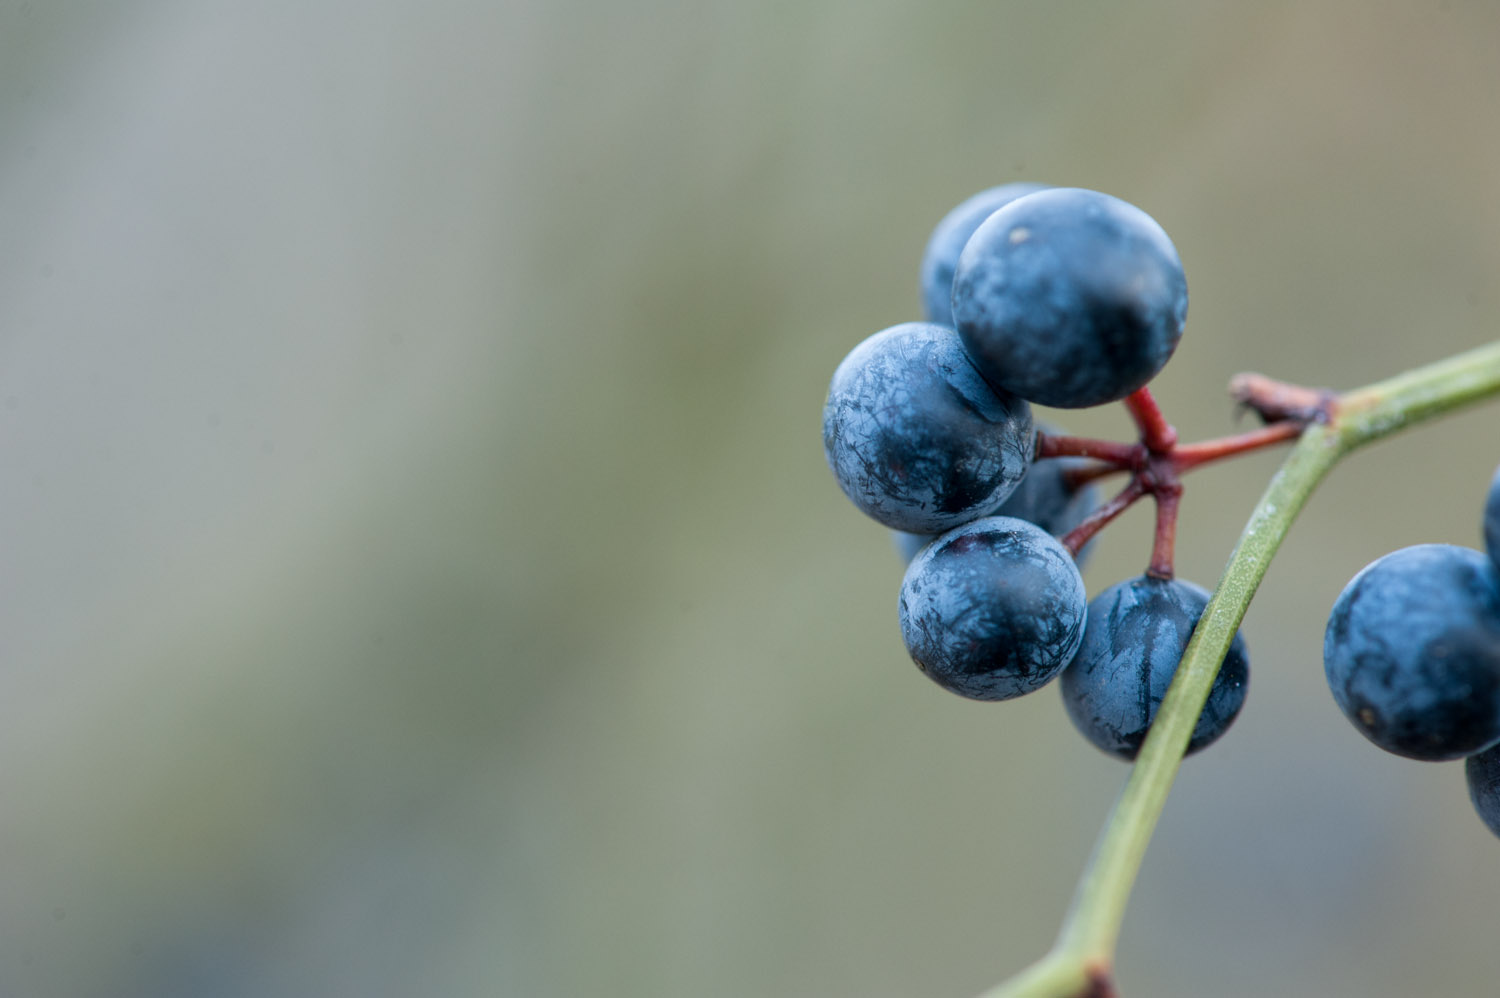 A thorny vine had these berries growing all over it  .